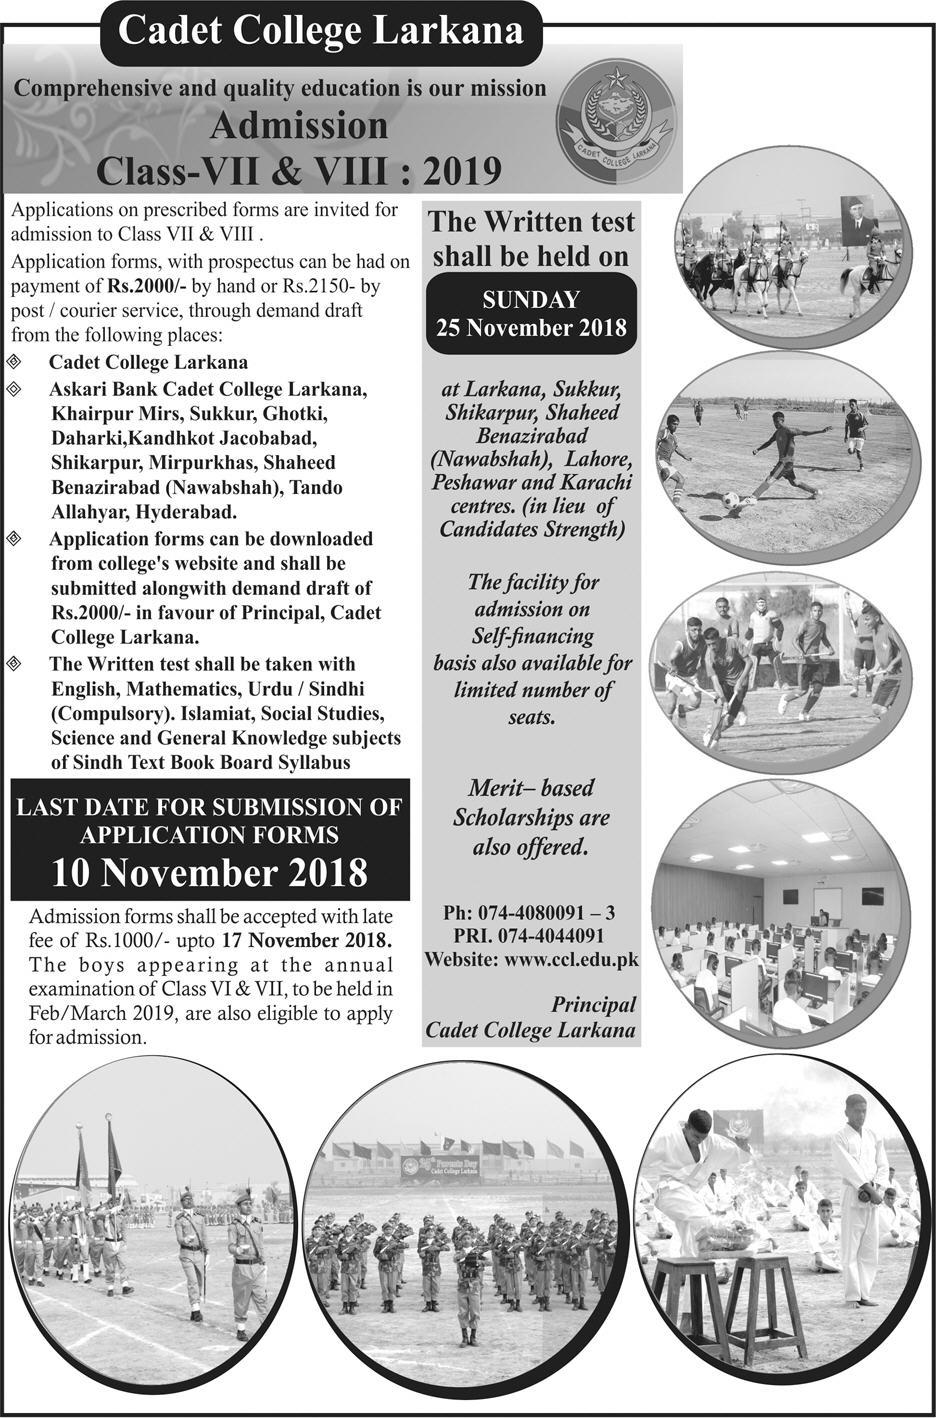 Cadet College Larkana Admission 2019 Form, Entry Test Result Date